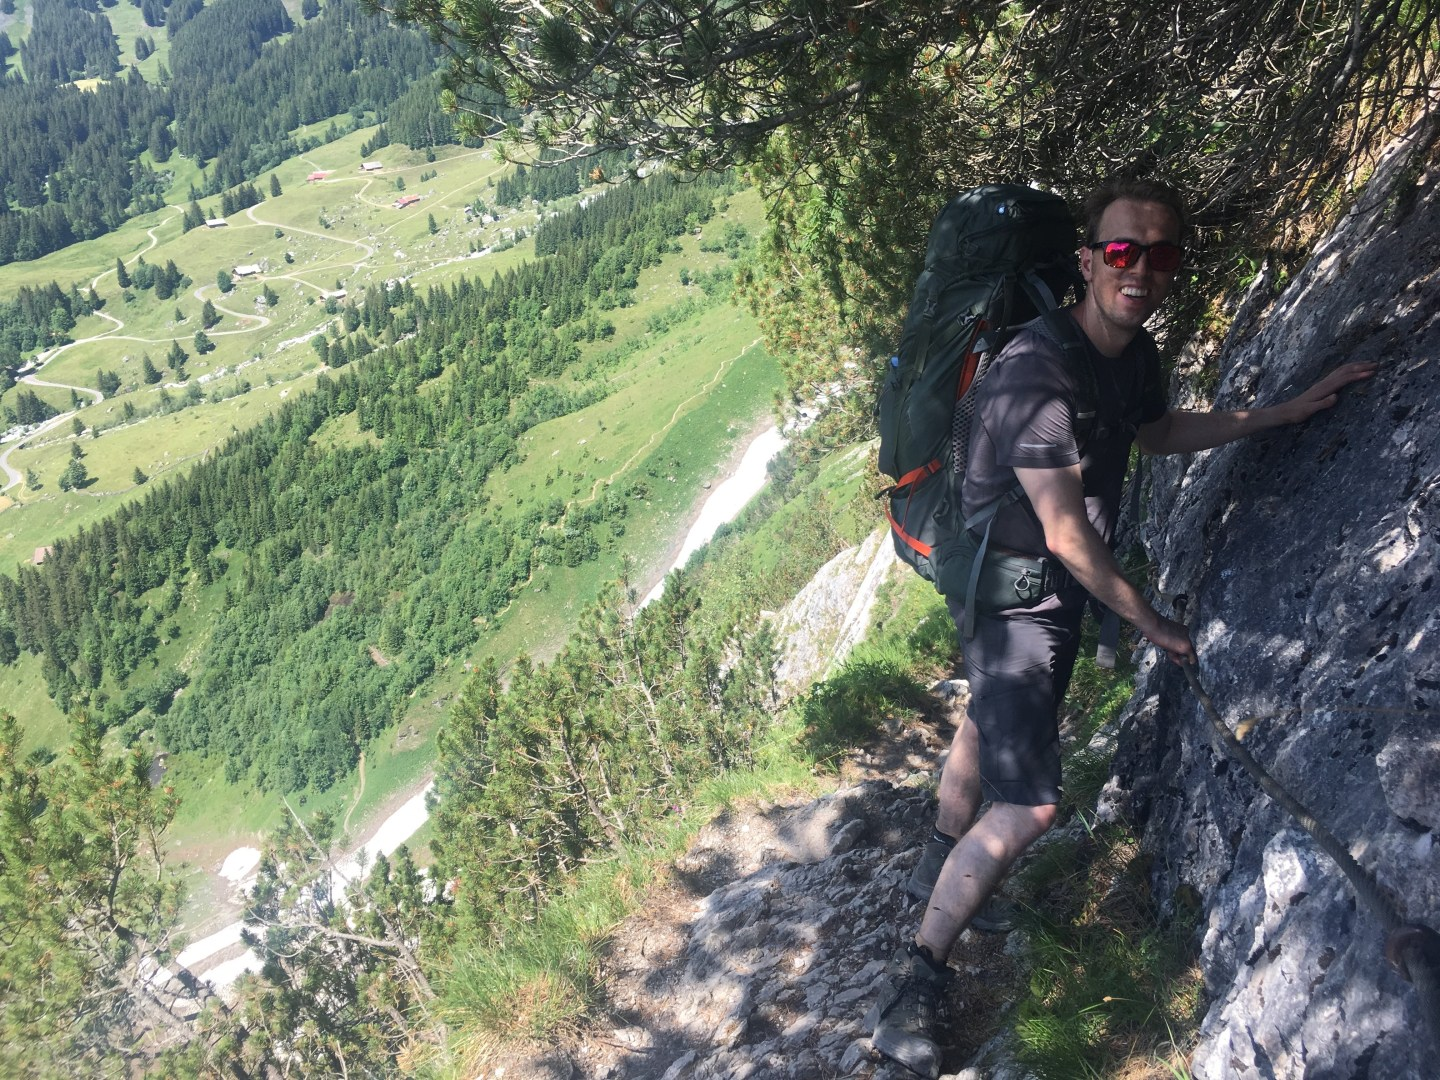 Backpacking in the Swiss Alps: Glecksteinhütte and Grindelwald